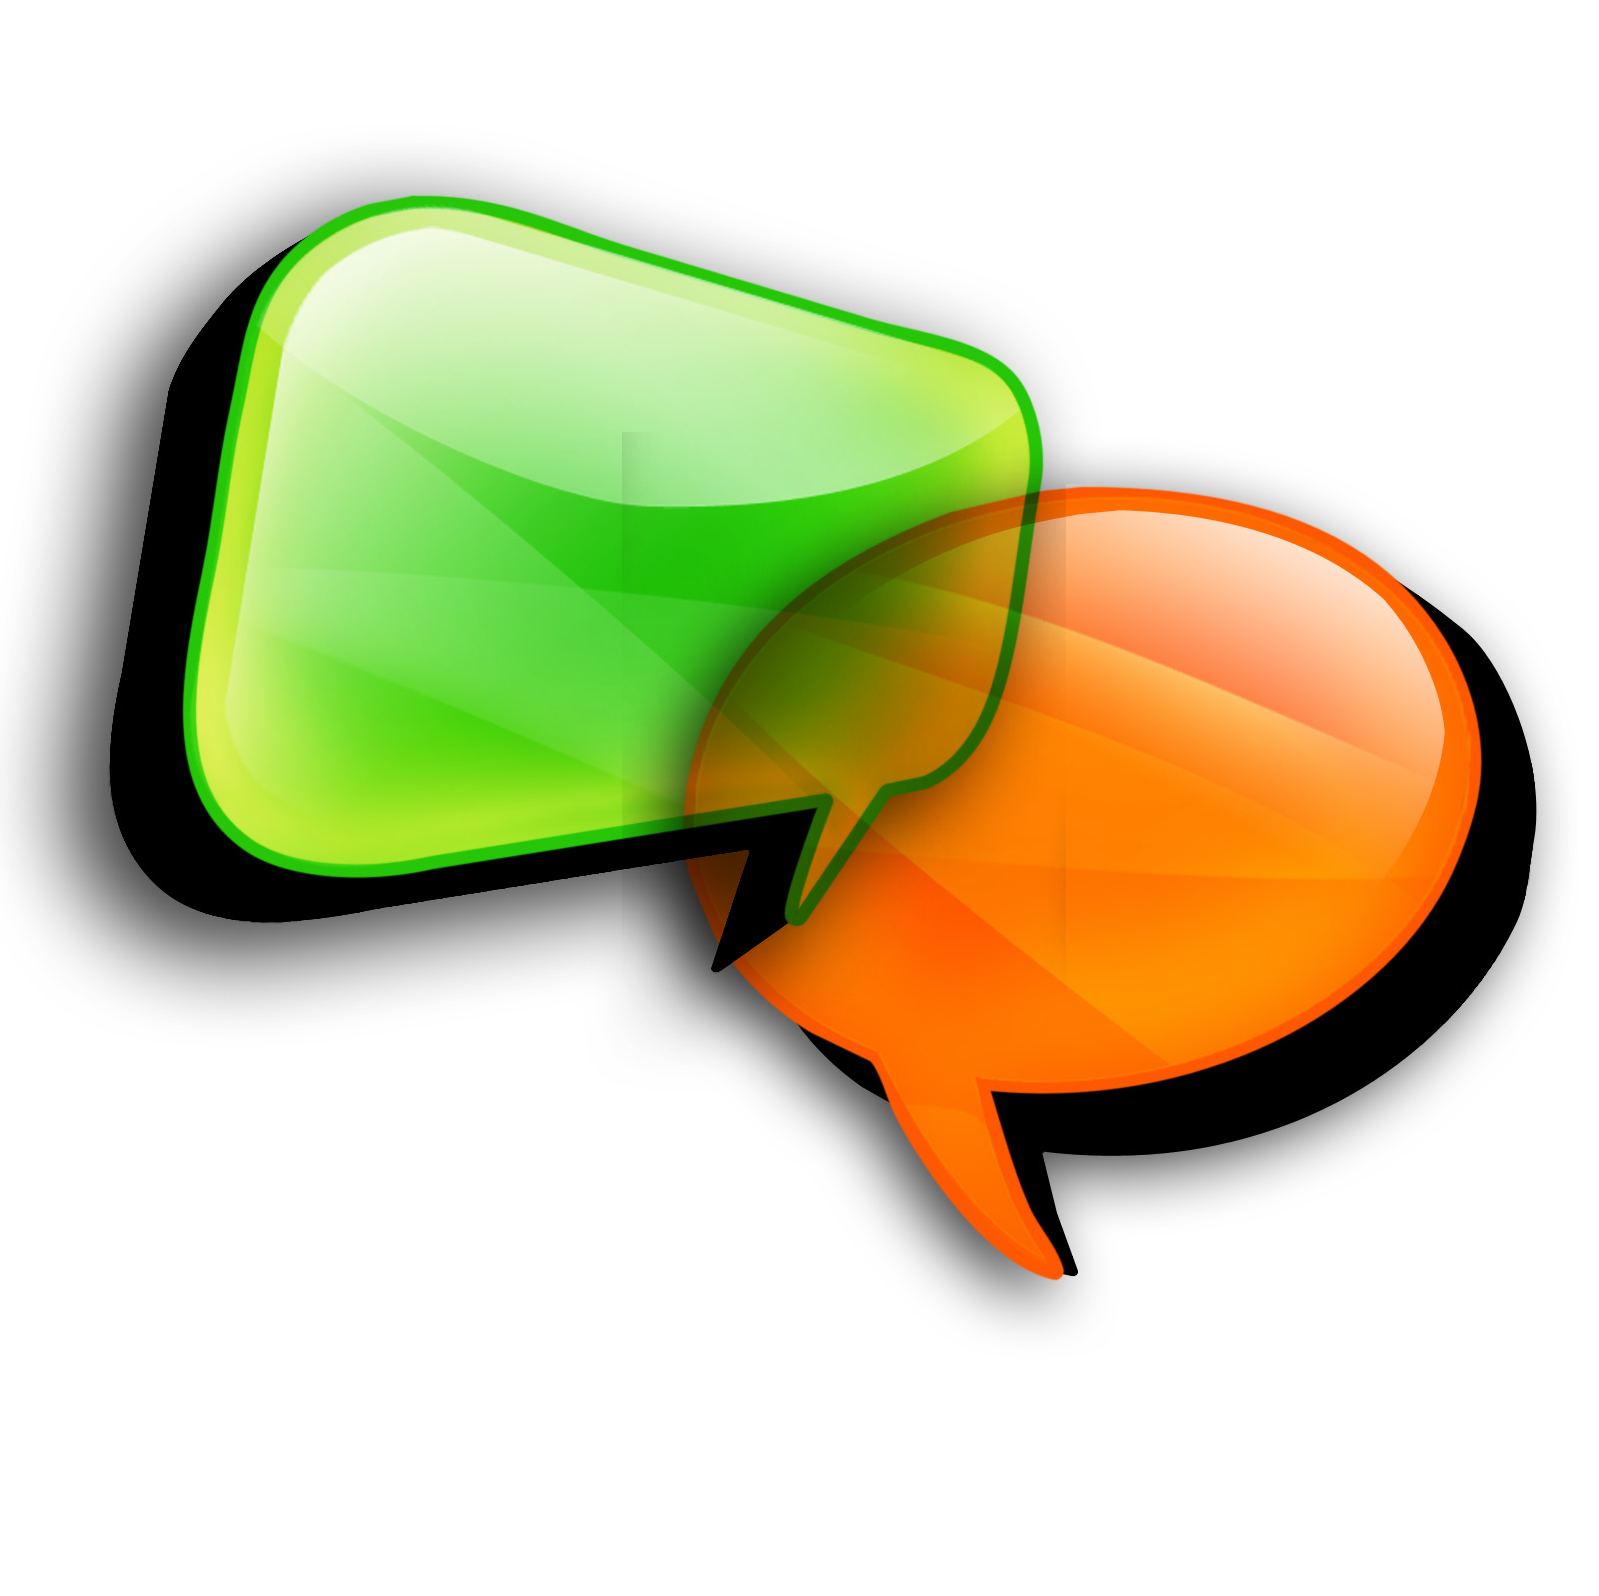 10 Strategies for Getting More Blog Comments